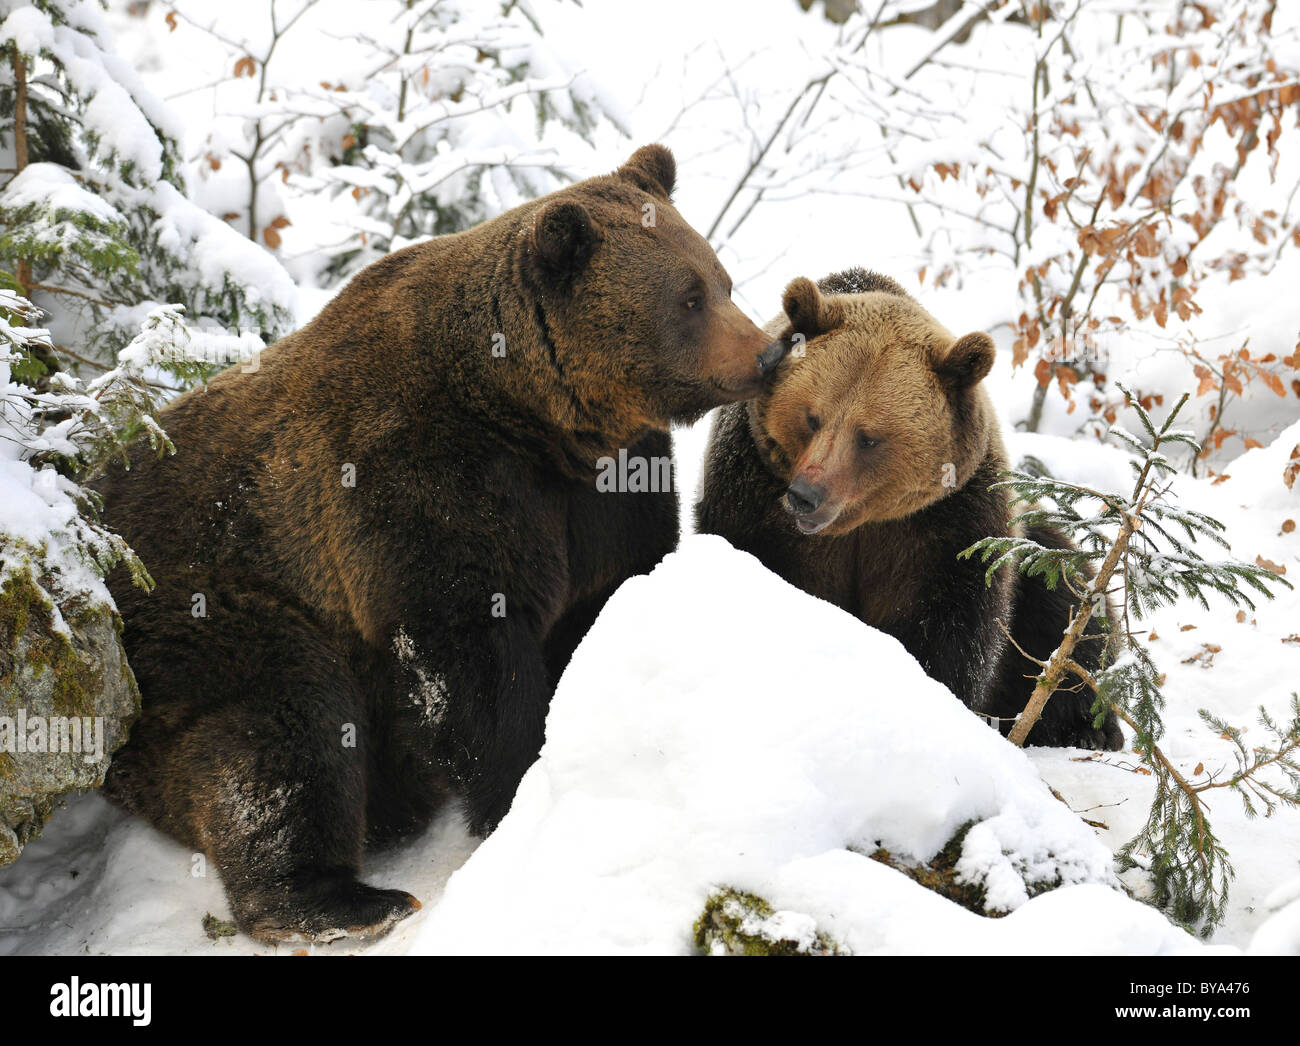 Brown bears (Ursus arctos), gently boar and sow in the snow - Stock Image